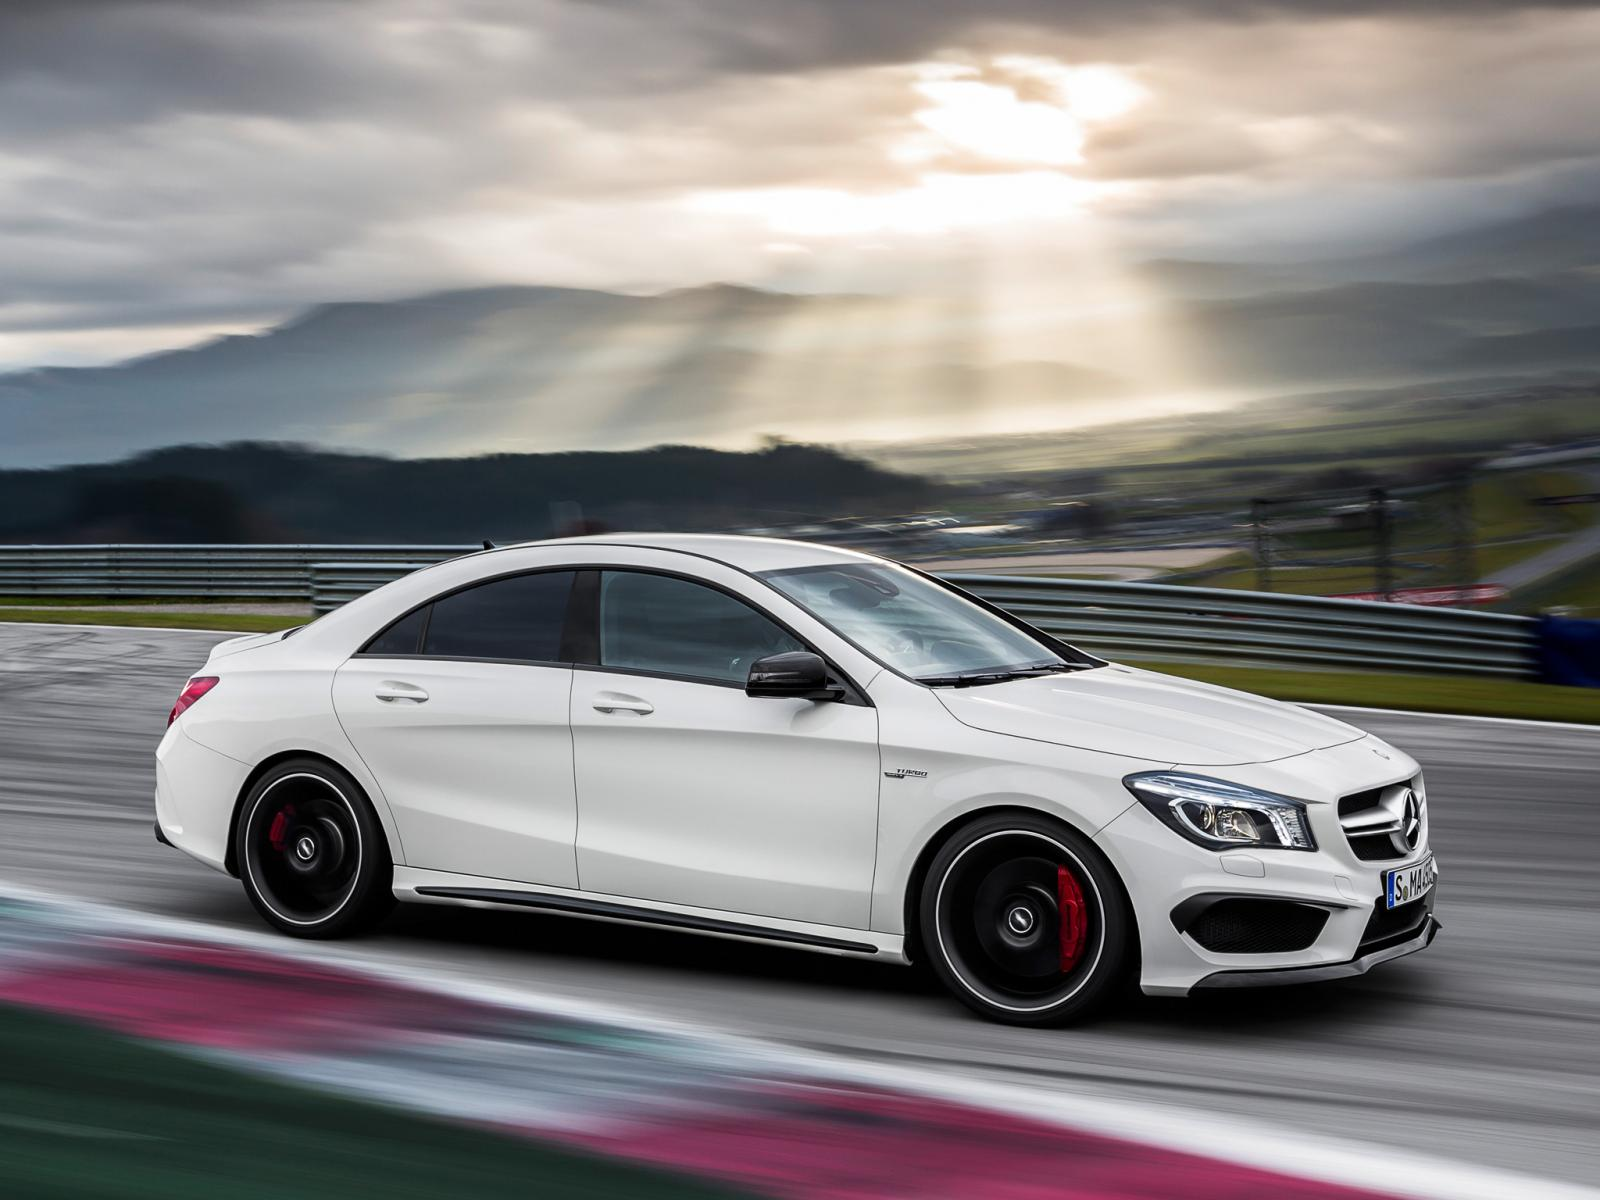 Mercedes benz cla 45 amg revealed ahead of new york debut for Benz mercedes cla